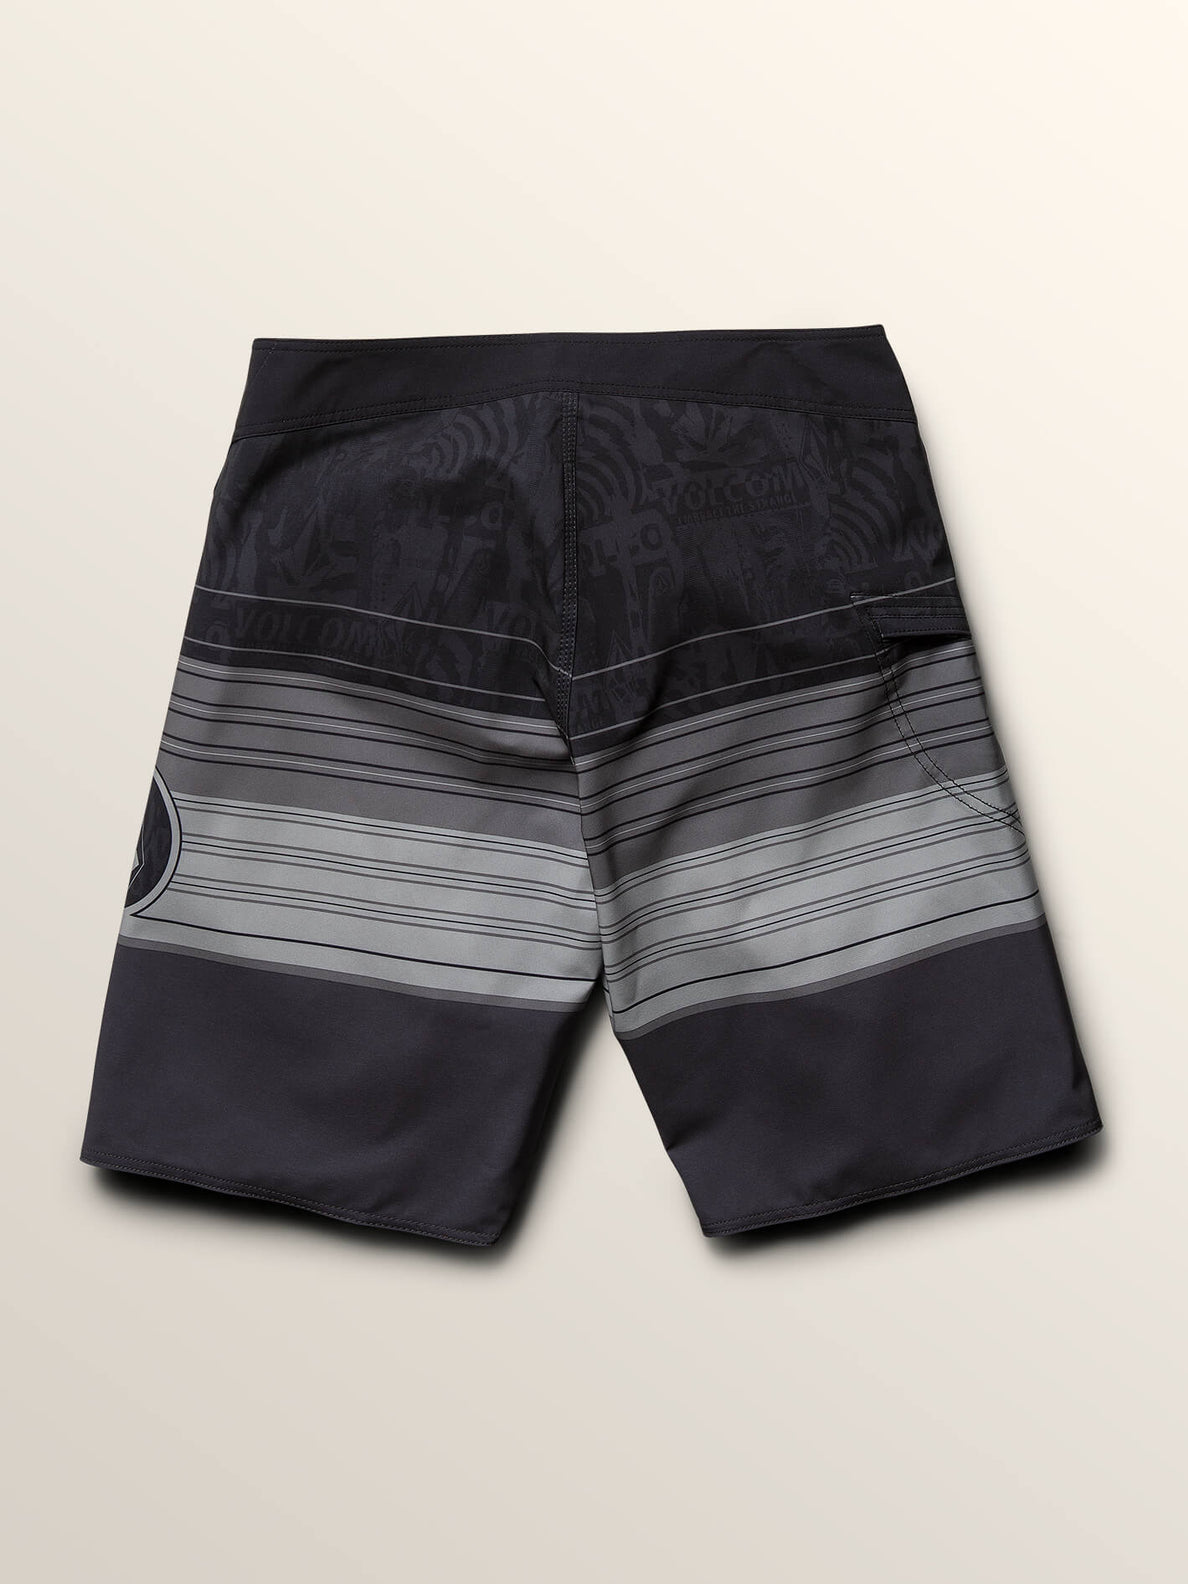 Lido Liney Mod Boardshorts In Black, Fourth Alternate View